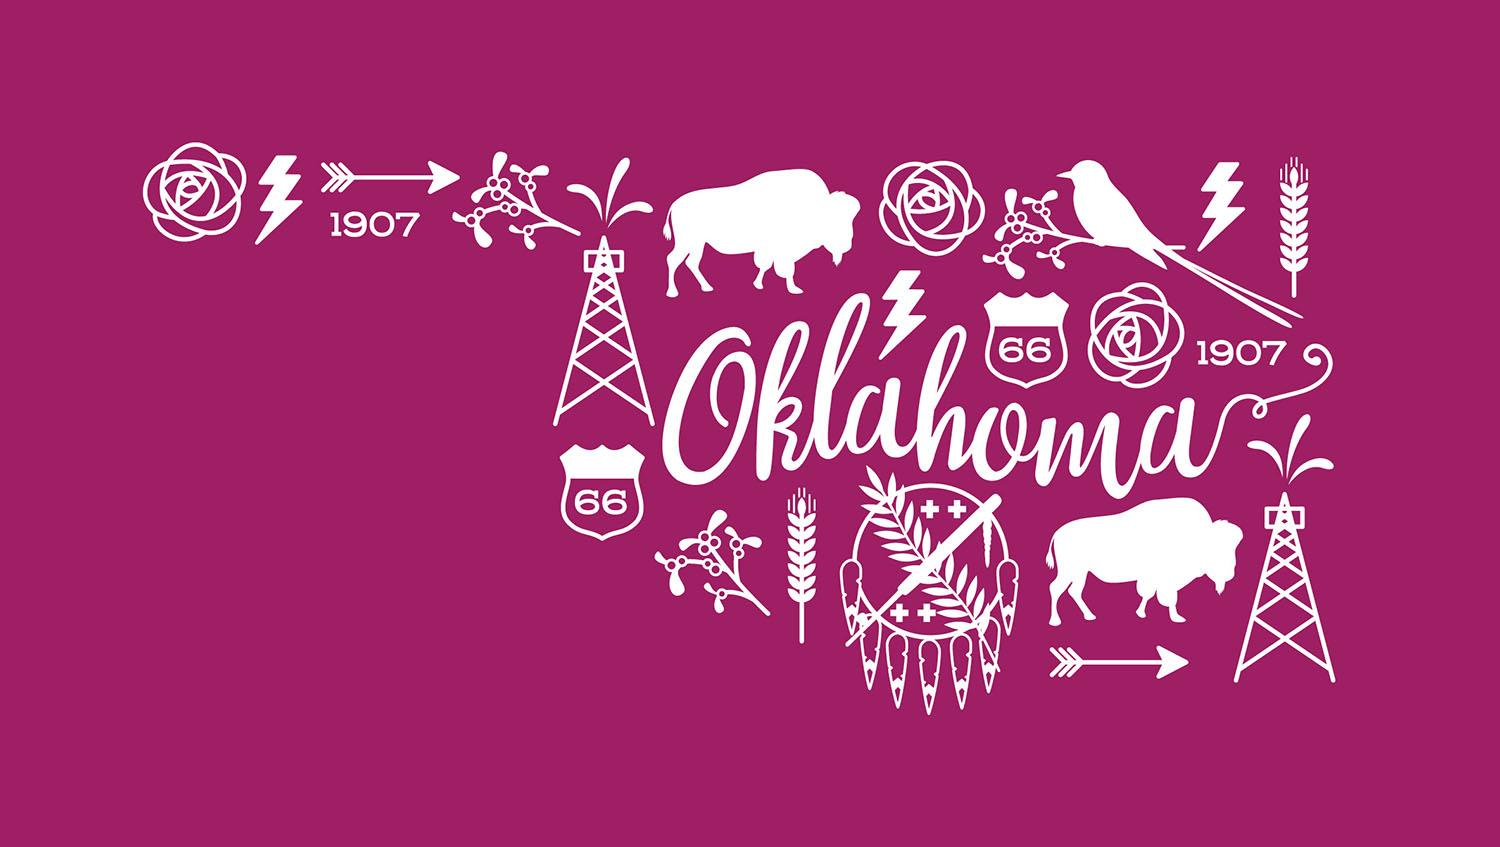 Oklahoma Illustration